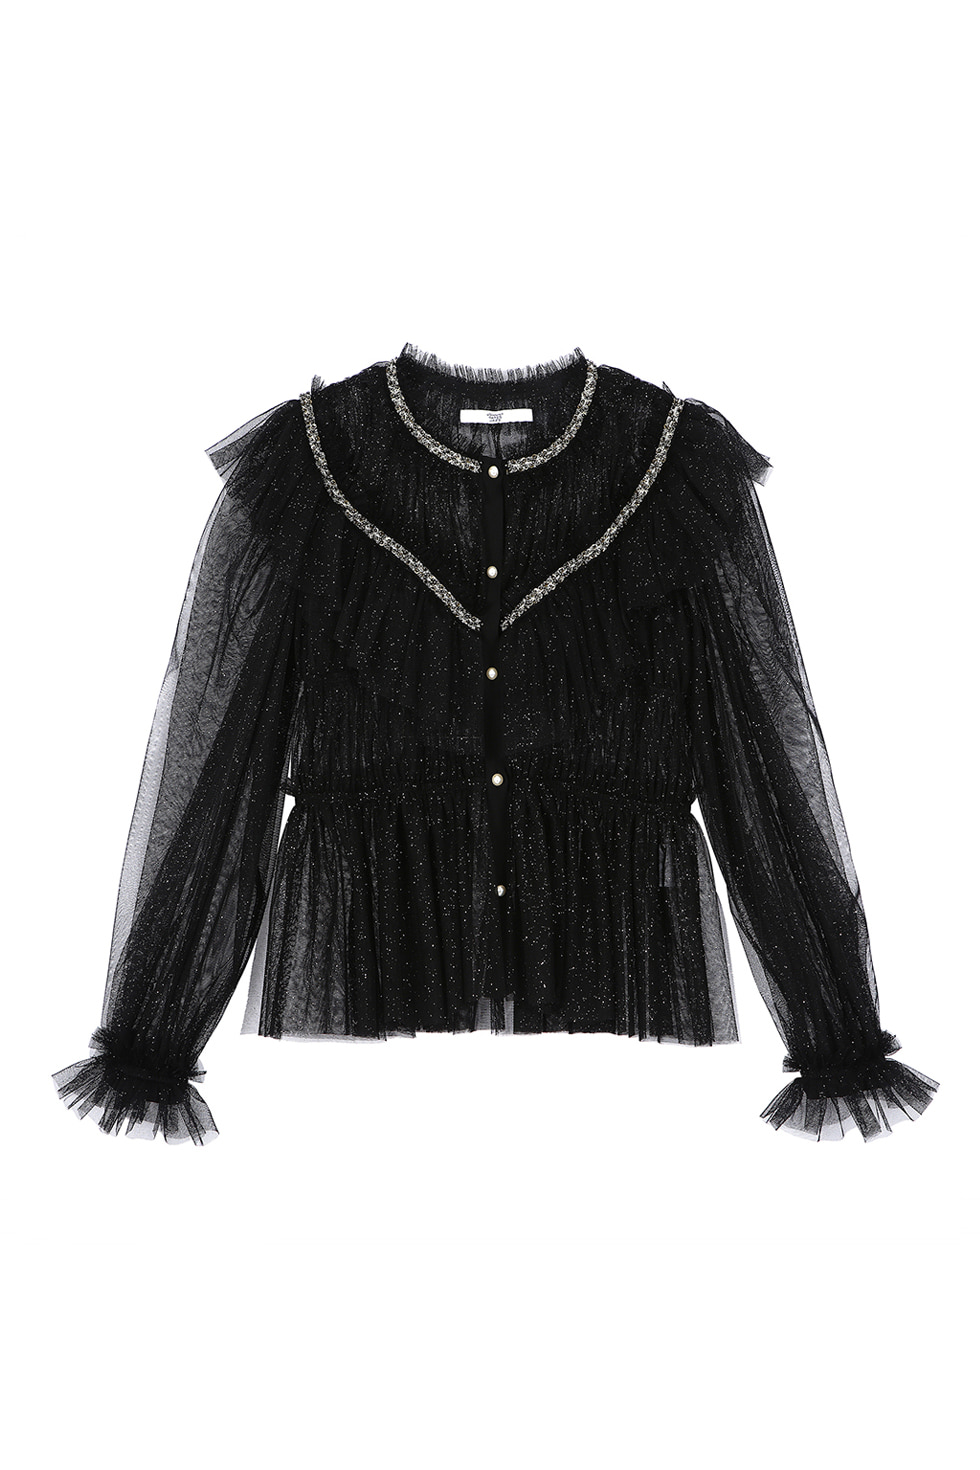 SPANGLE TULLE BLOUSE - BLACK